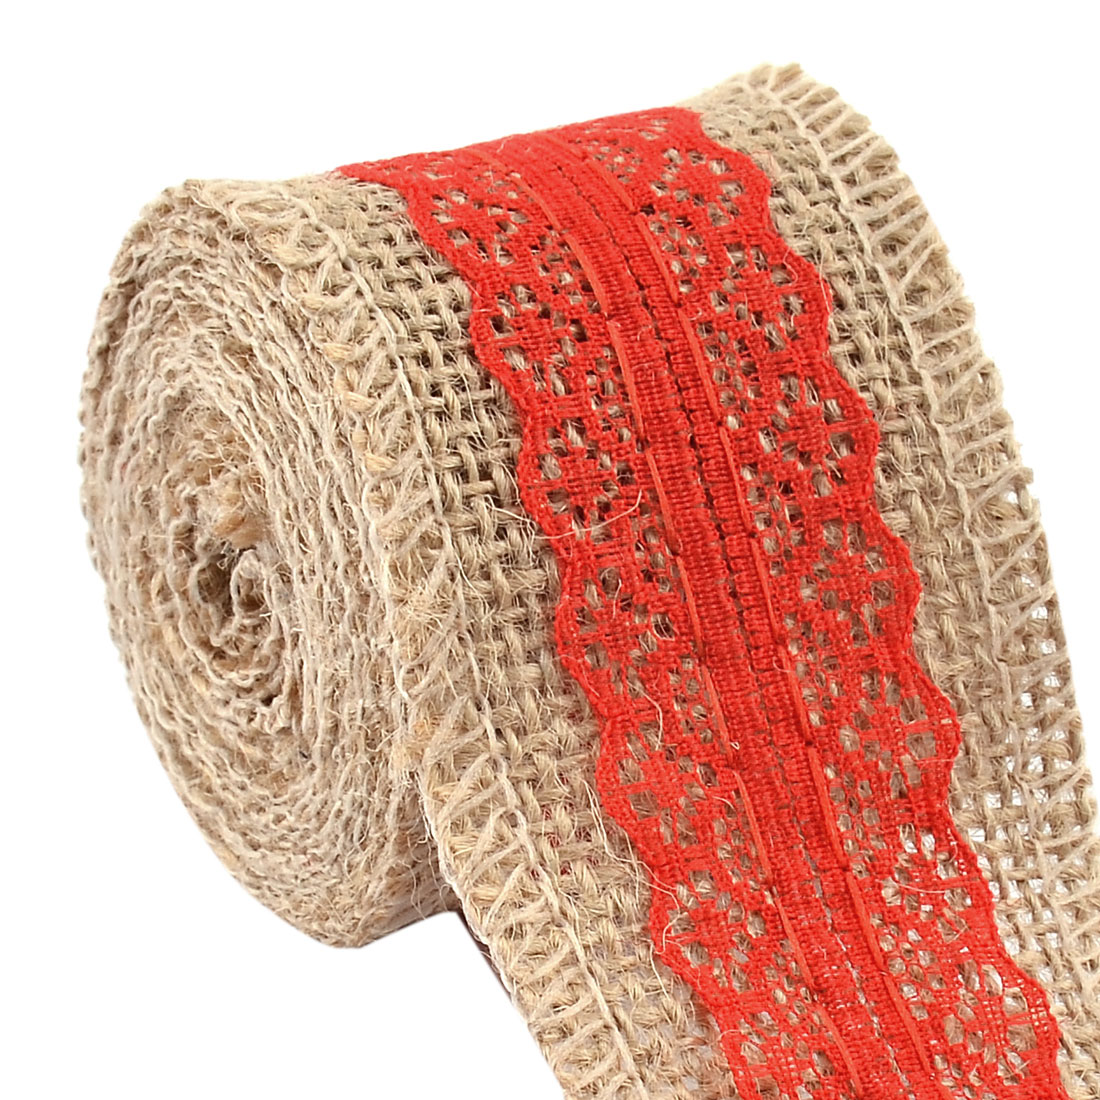 Wedding Burlap Belt Strap String Crafting Lace Trim Edge Ribbon Roll Red 2.2 Yards